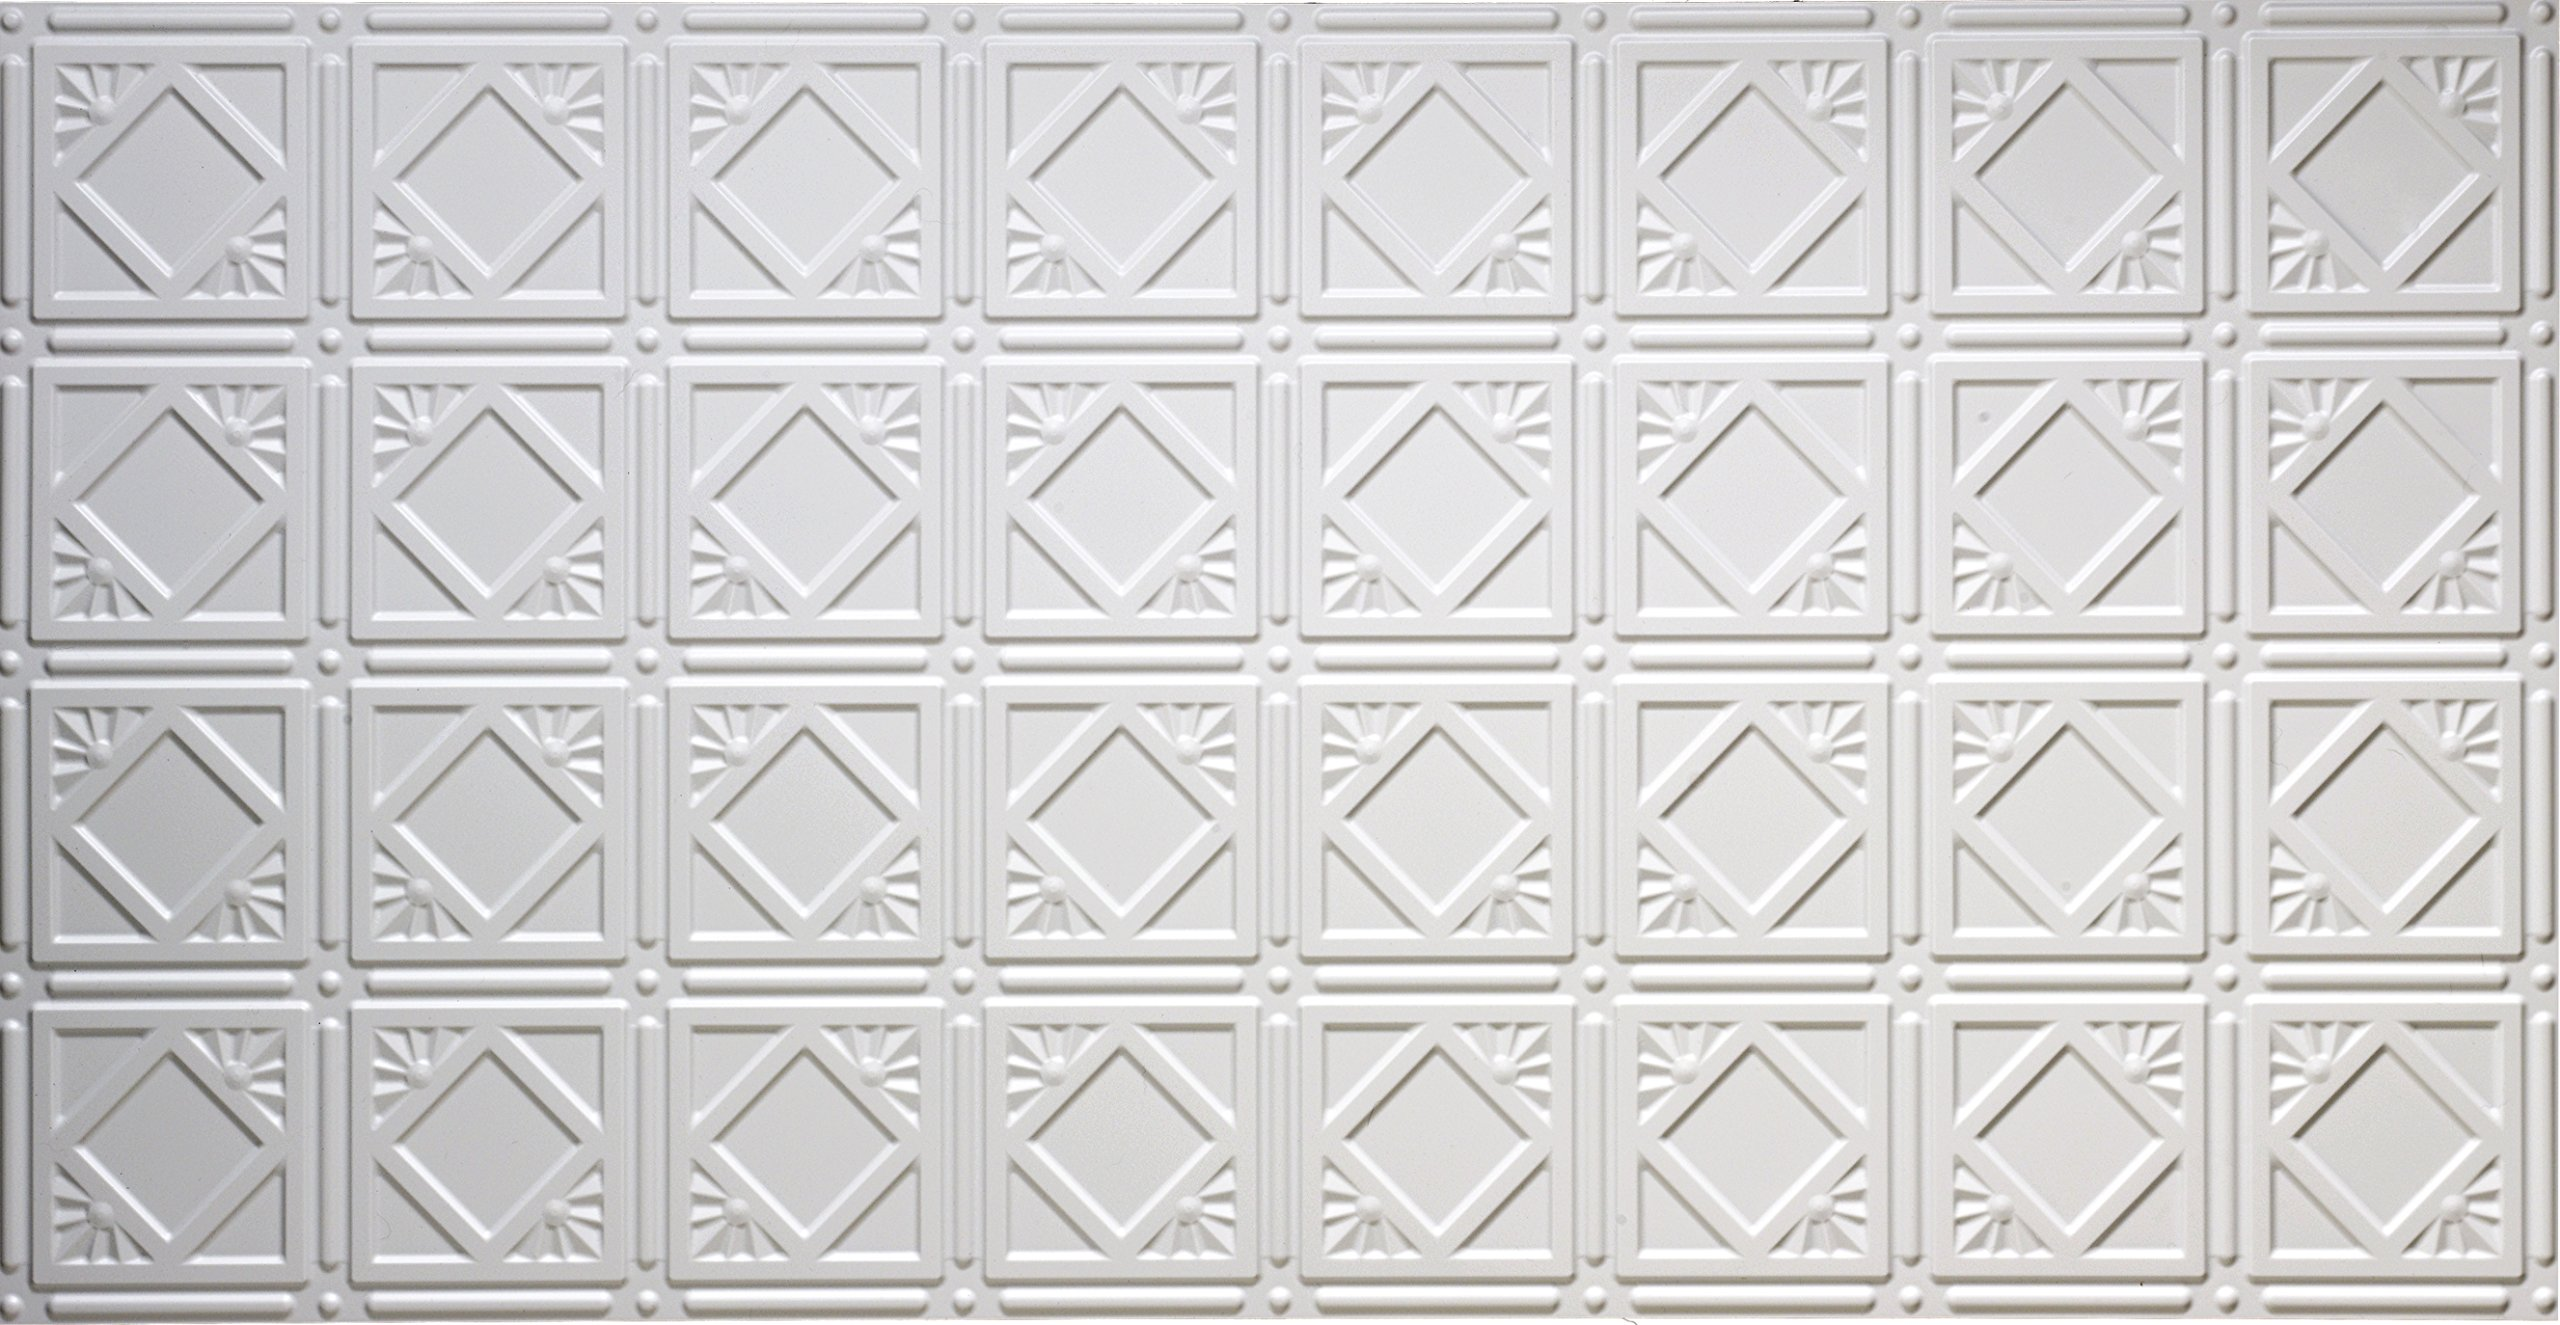 Global Specialty Products 207W Modern Tin Style Panels For Glue-Up Installation, Matte White